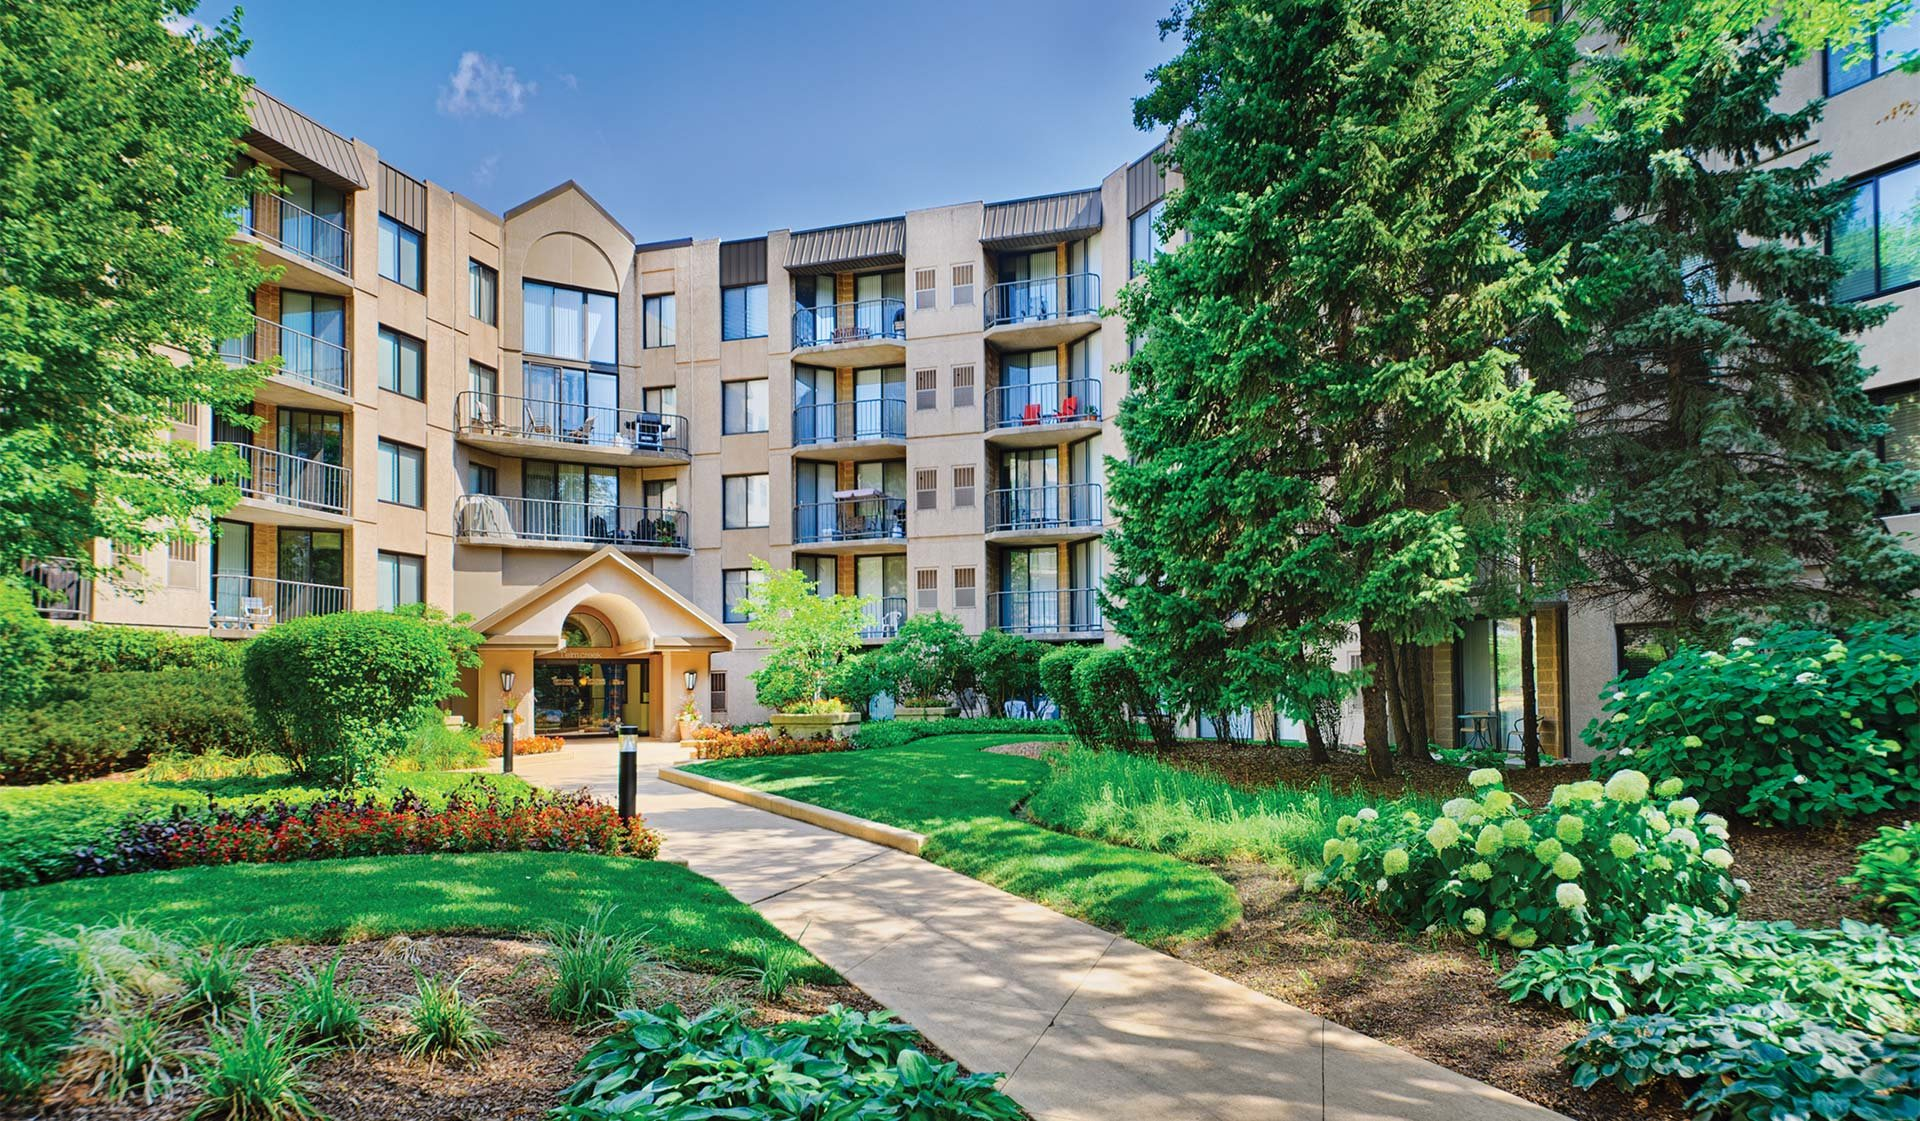 20 Best Apartments In Elmhurst IL with pictures